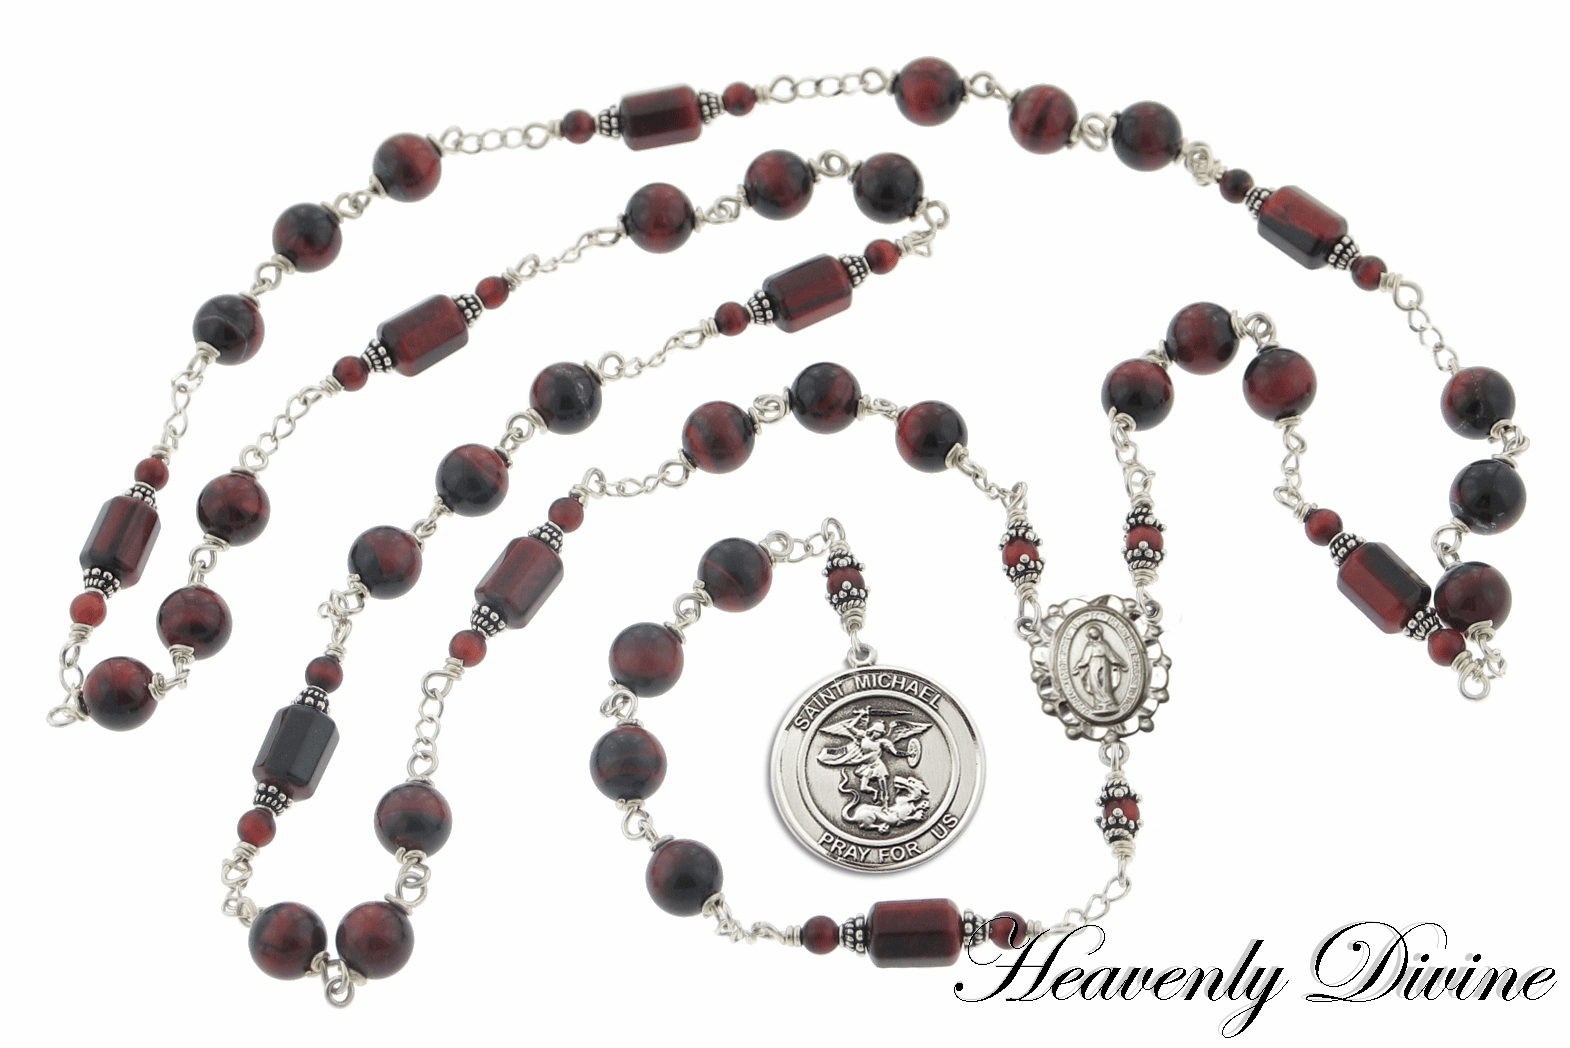 Handmade Chaplet of St. Michael the Archangel - Angelic Crown by Heavenly Divine